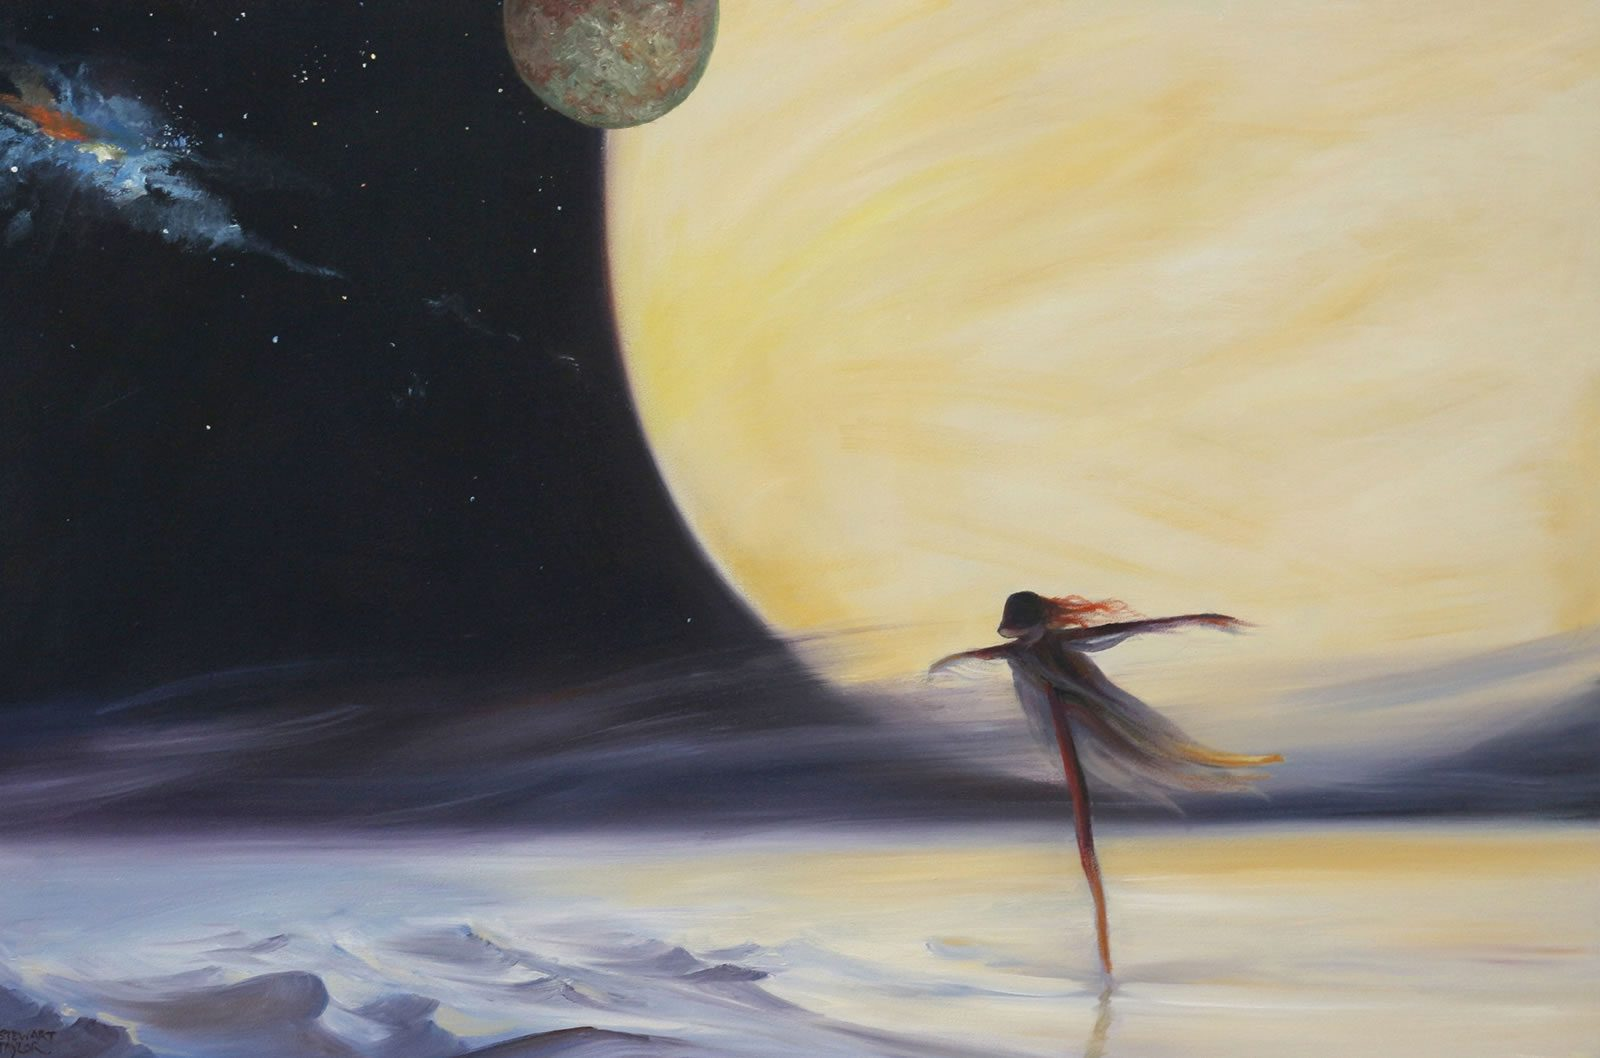 Bleak futuristic vision in an oil painting form the imagination of Stewart Taylor